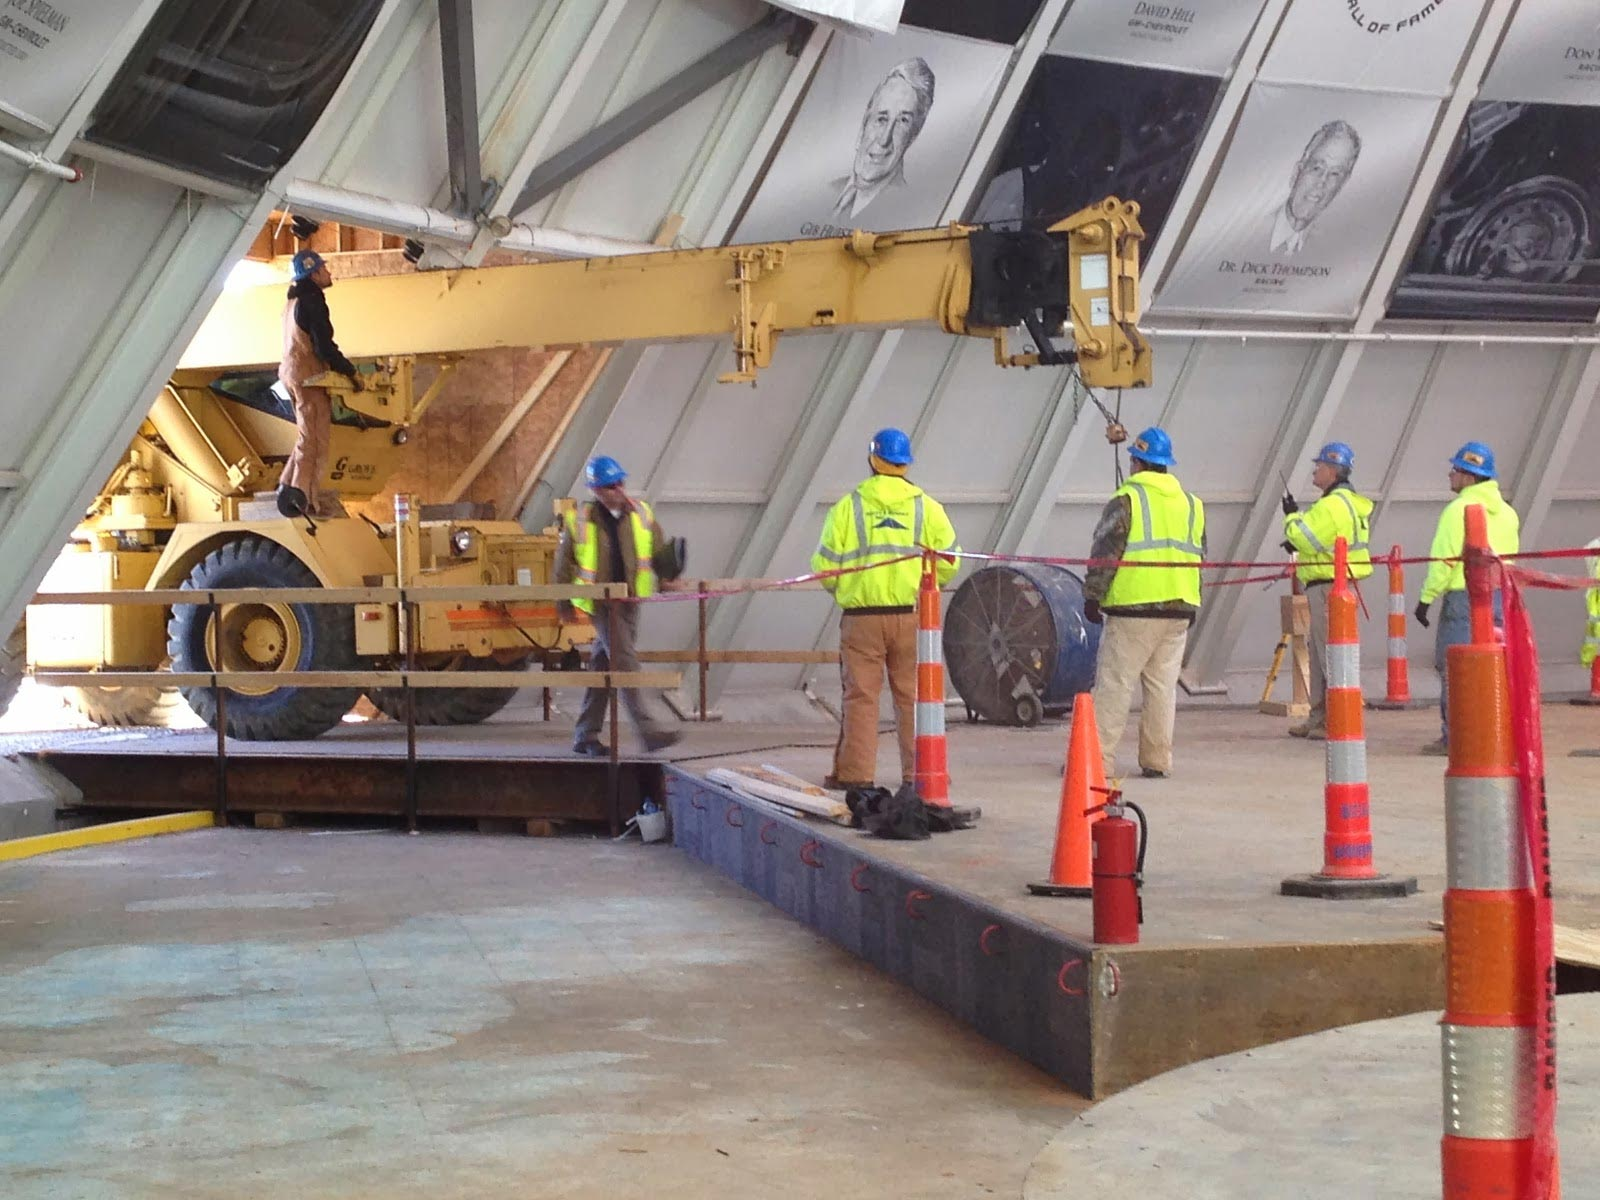 Corvette Museum to Start Removing Corvettes from Sinkhole Next Week